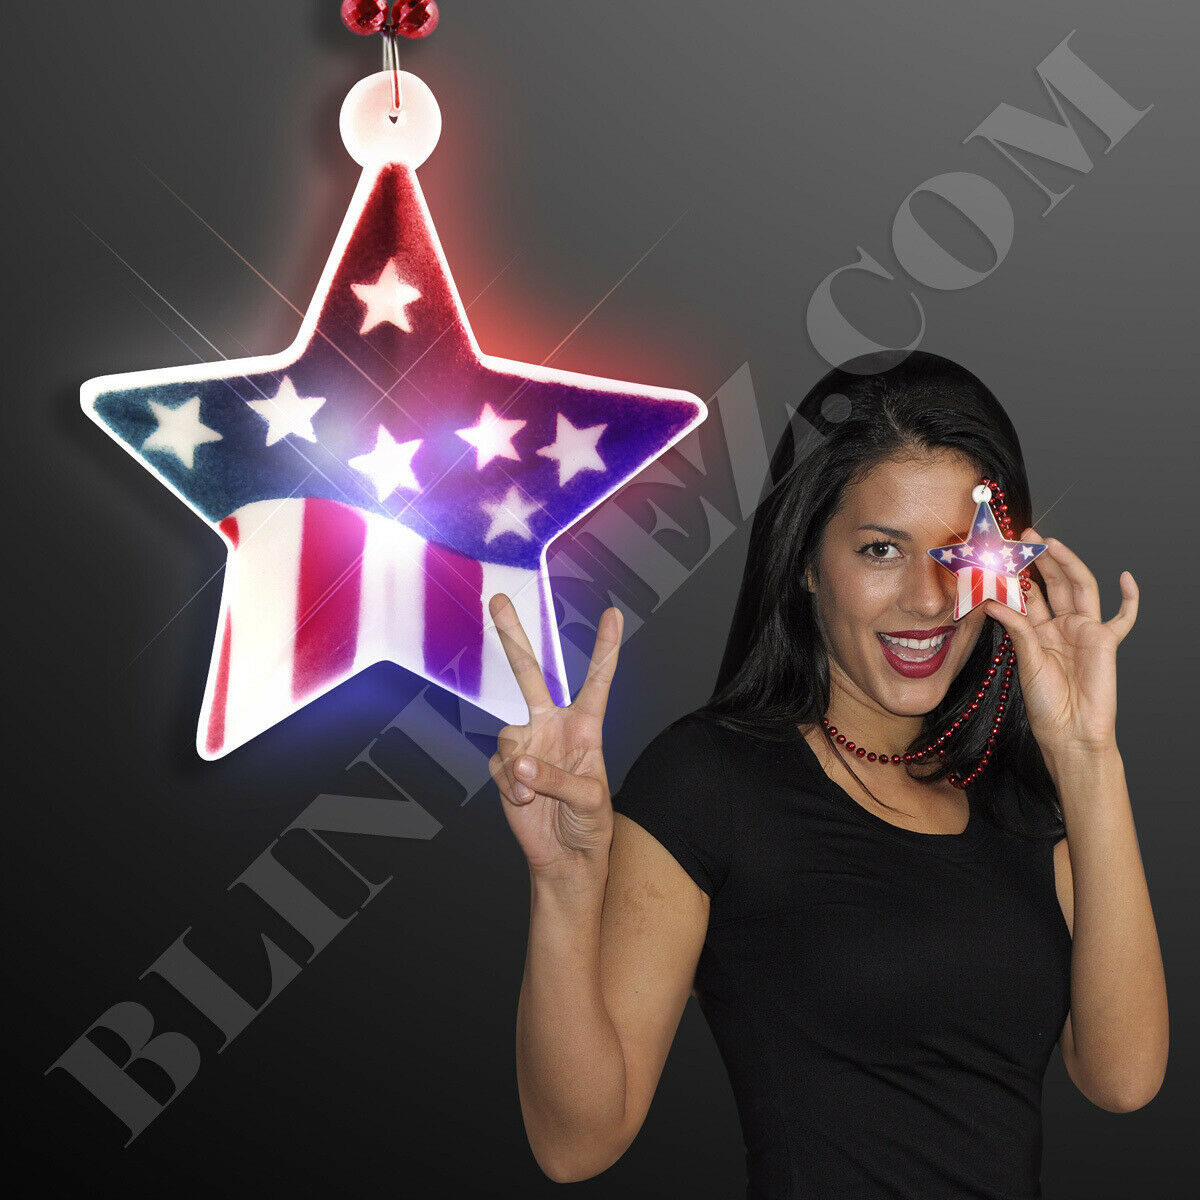 12X Light Up Flag Star on Mardi Gras Beads 4TH OF JULY FUN